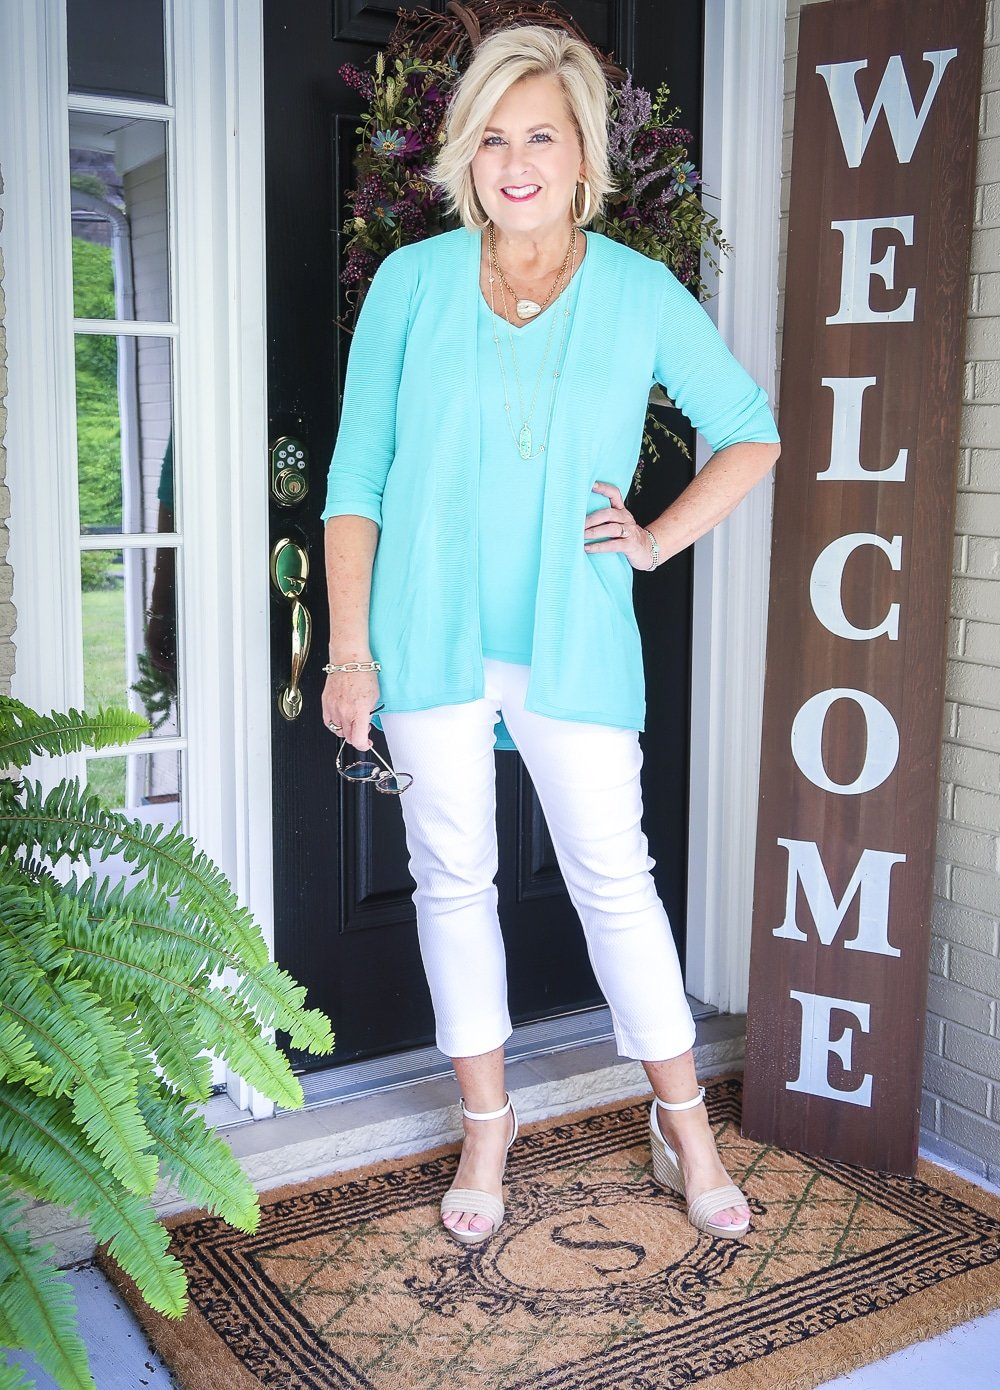 Fashion Blogger 50 Is Not Old is wearing a matching sweater set in Aqua, white crop pants, gold jewelry from Kendra Scott, and white espadrilles